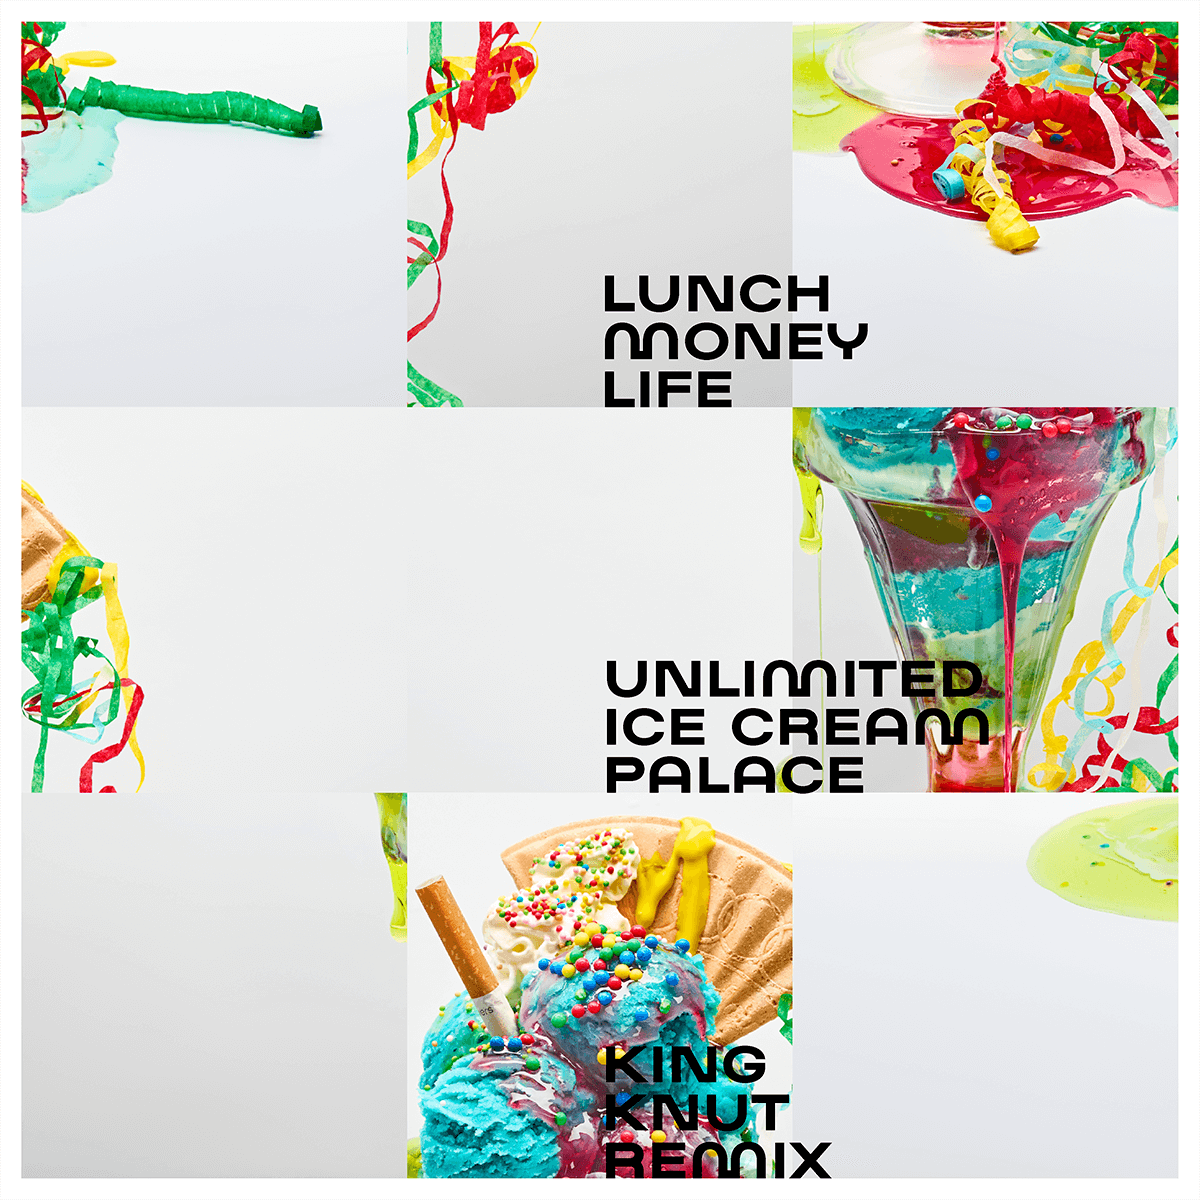 Unlimited-Ice-Cream-Palace-remix Record Cover